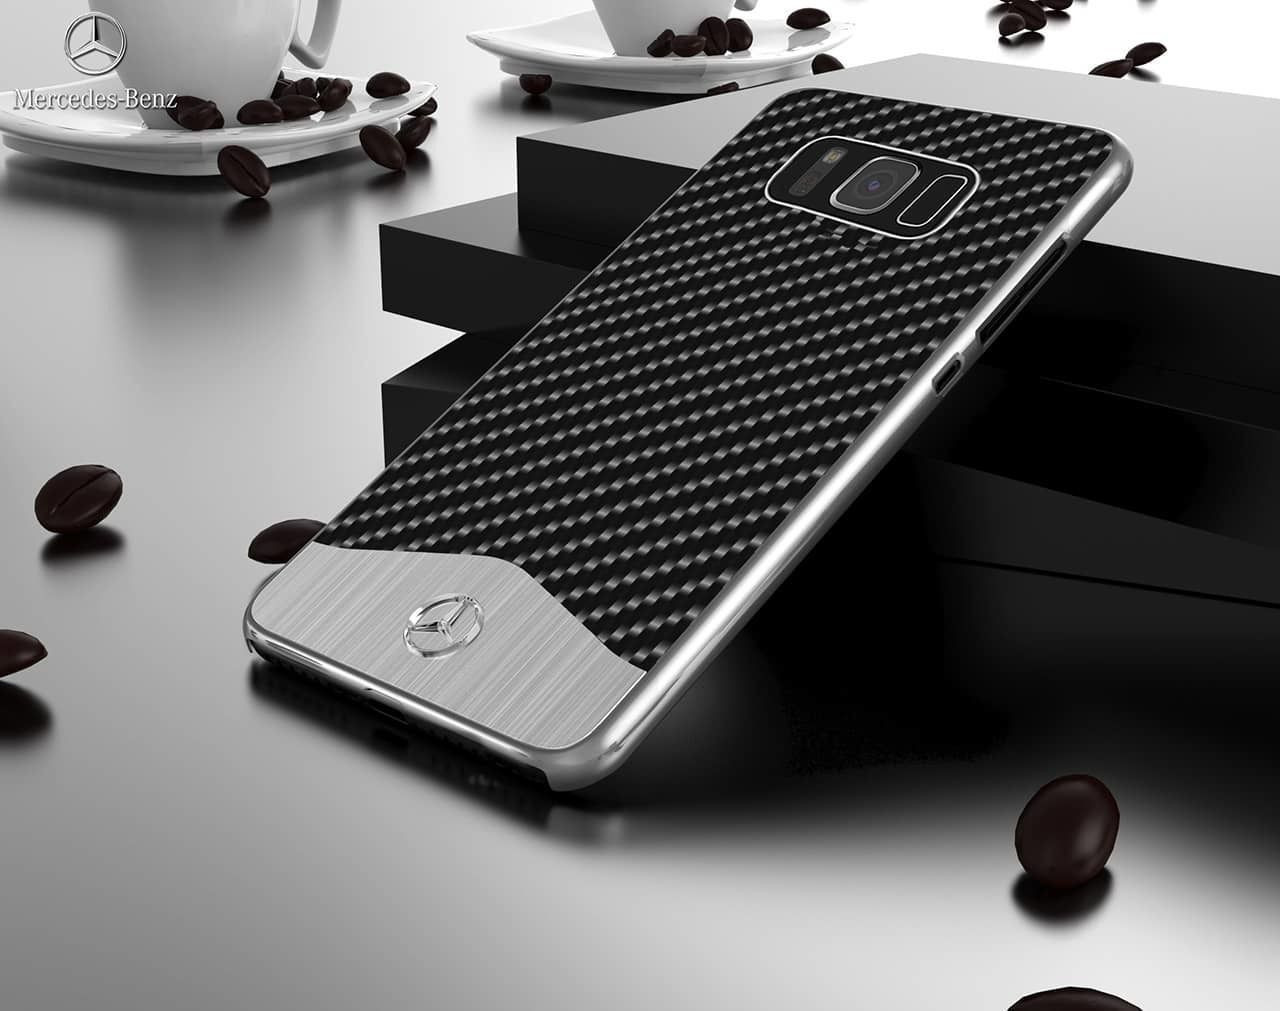 timeless design b86c0 5e1c9 Mercedes Benz ® Samsung Galaxy S8 Plus SLR McLaren Carbon Fibre (Limited  Edition) Electroplated Metal Hard Case Back Cover